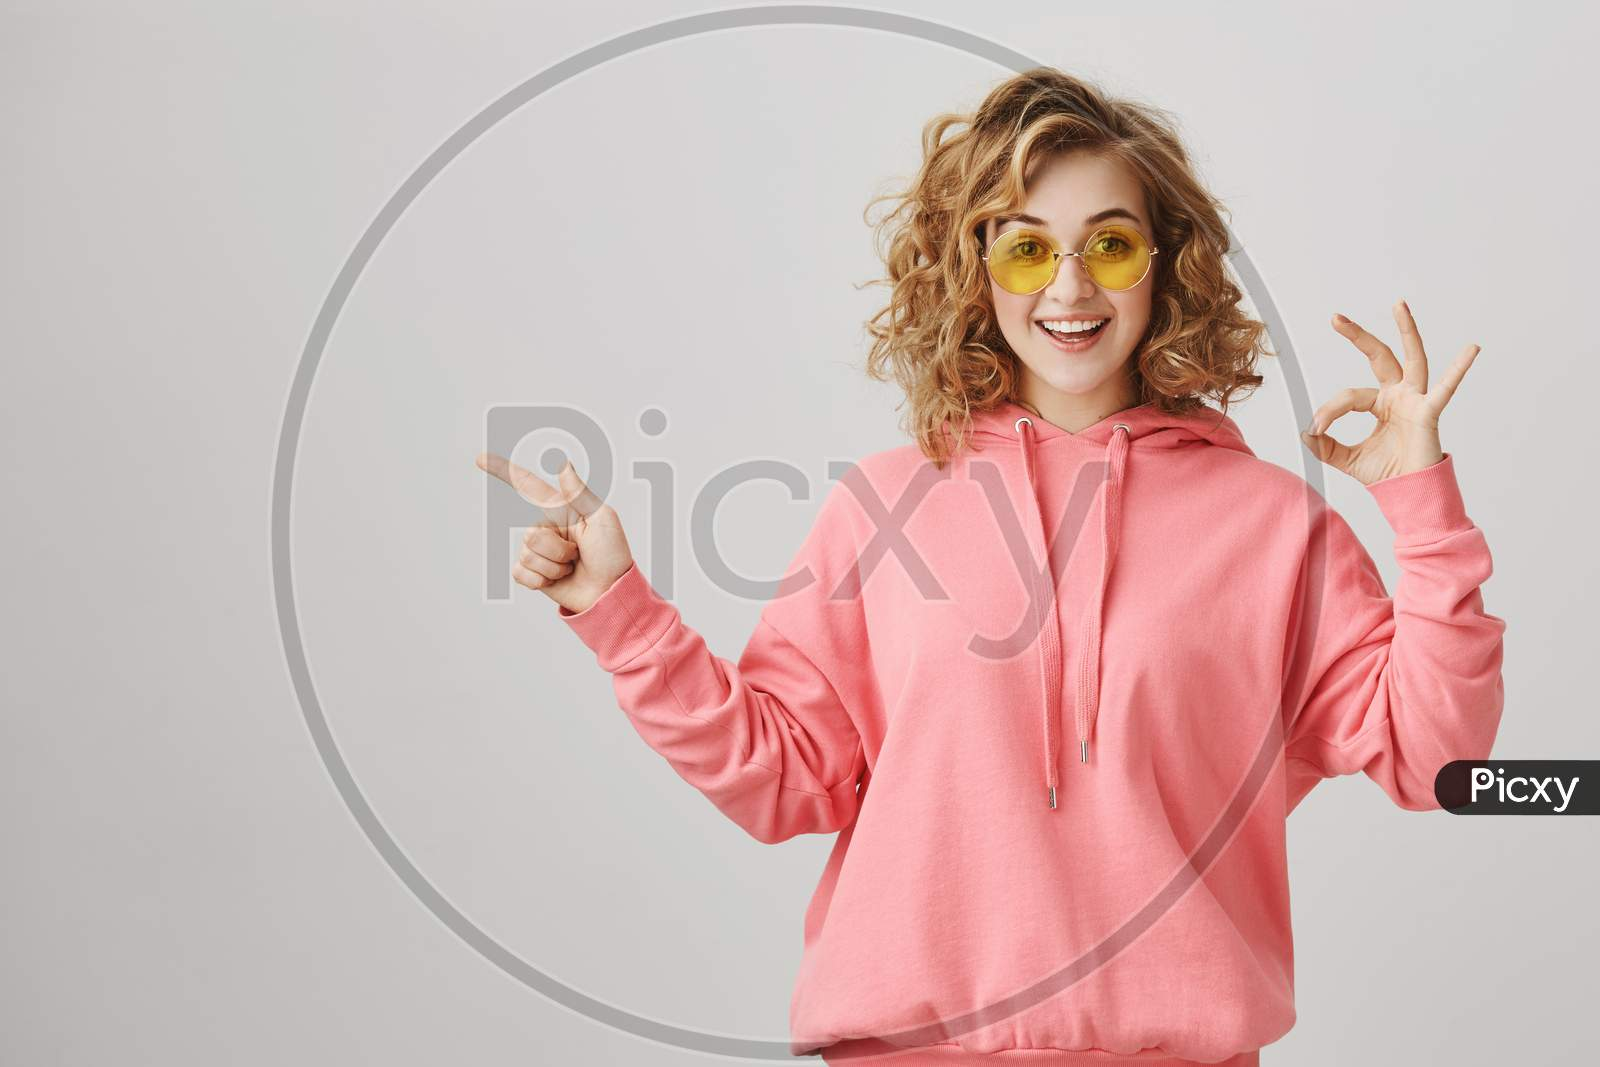 I Am Okay With That. Studio Shot Of Good-Looking Curly-Haired Girl With Bright Smile Showing Fine Gesture And Pointing Left With Friendly And Happy Expression, Standing Over Gray Background.